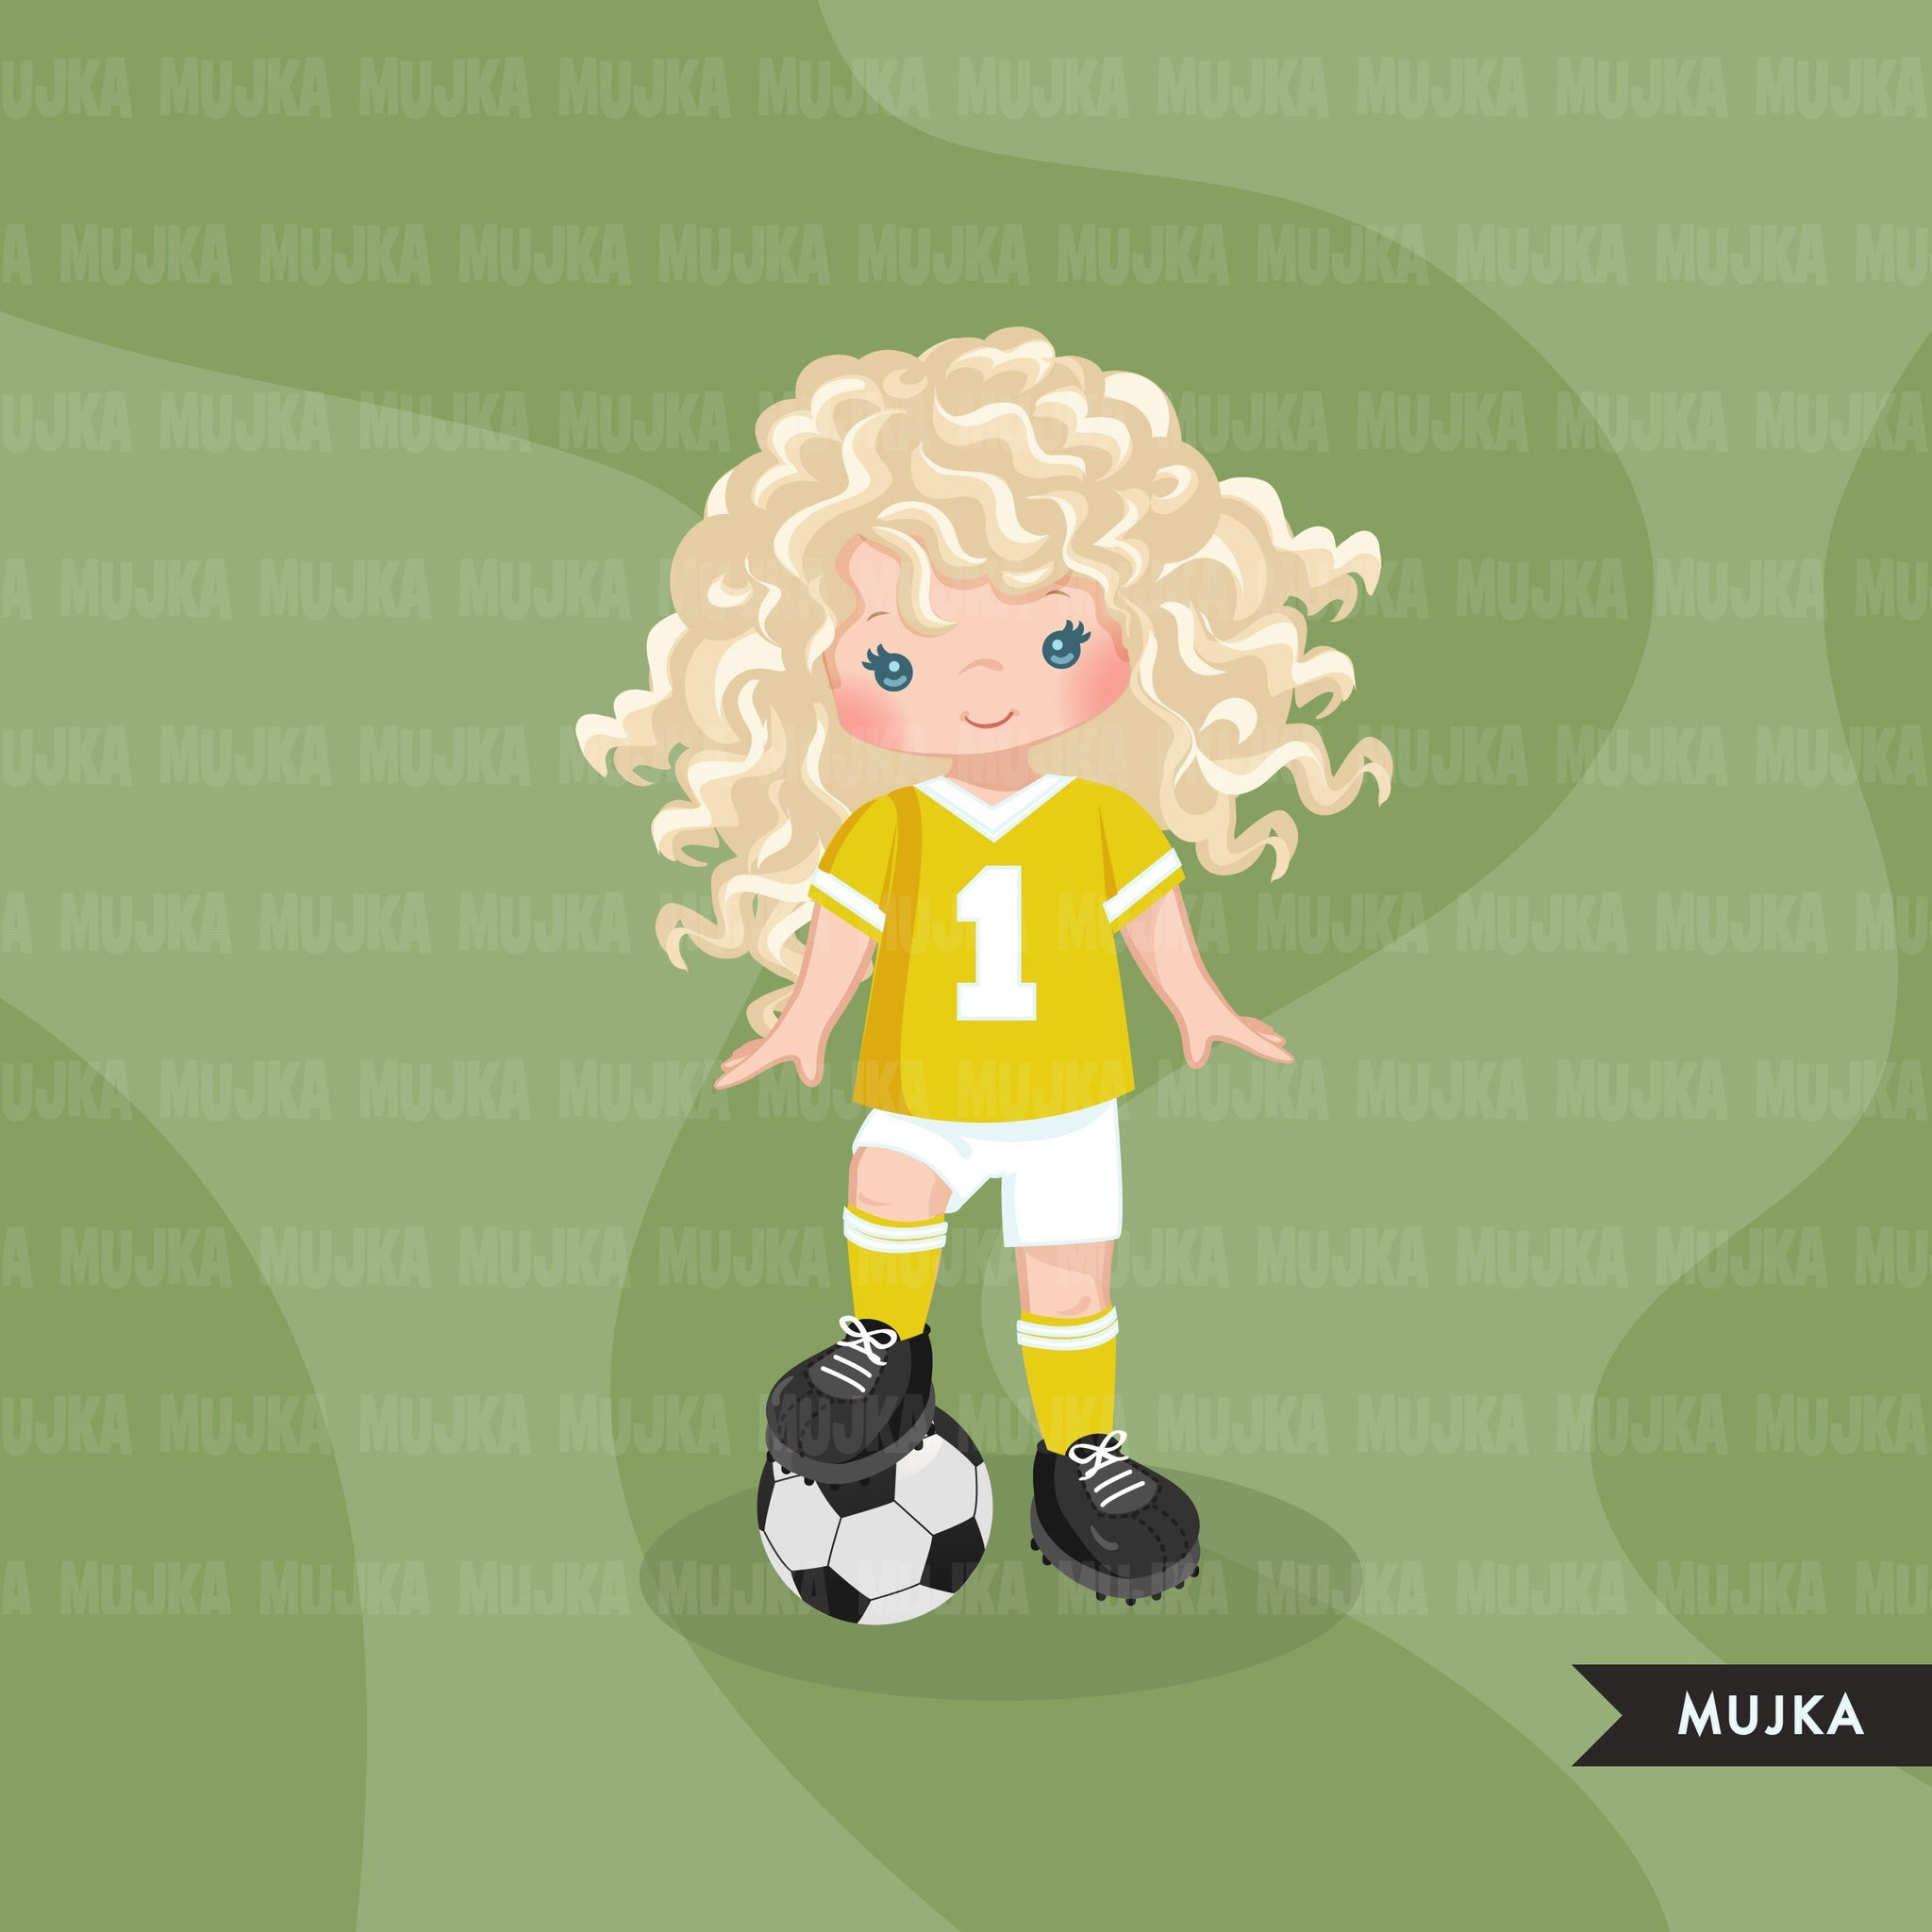 Soccer clipart, girl in yellow  jersey